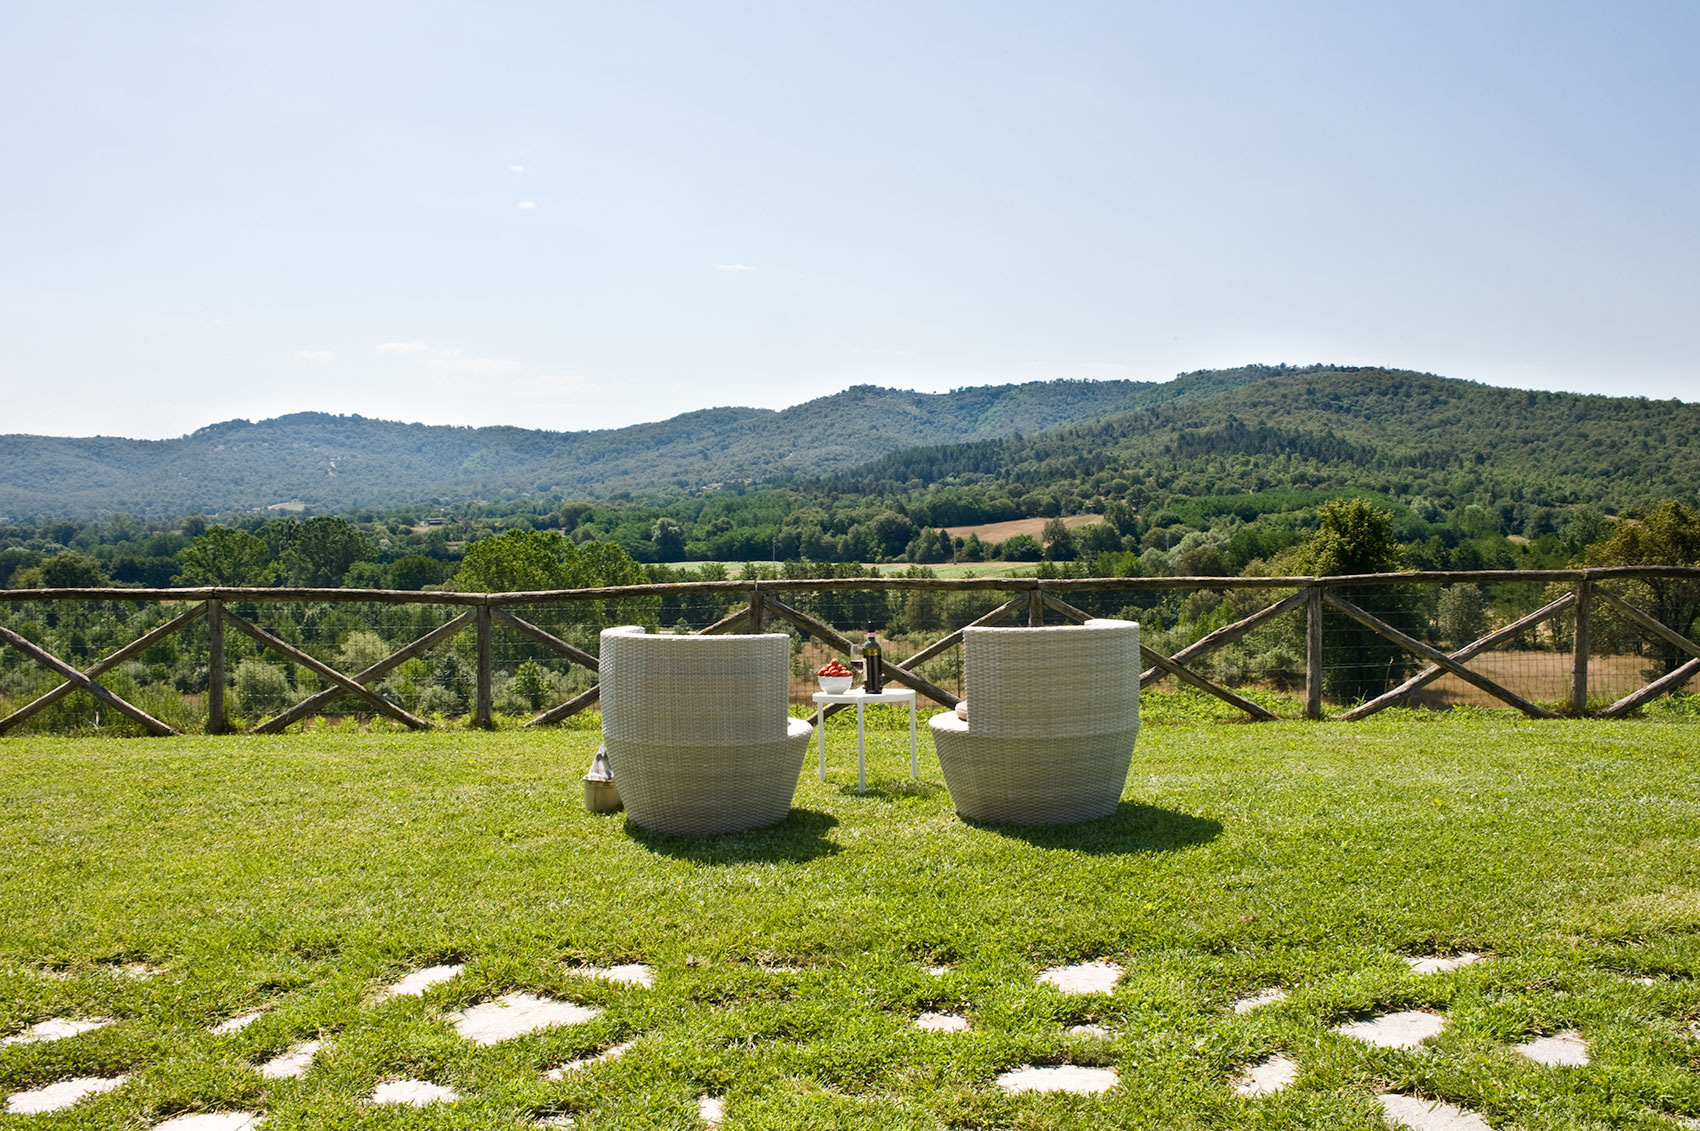 Incrociata, Agriturismo Incrociata, Tuscan Agriturismo, Farmhouse suites, Holiday apartments Tuscany, Tuscany accommodation, Tuscan holiday home, Casa vacanza